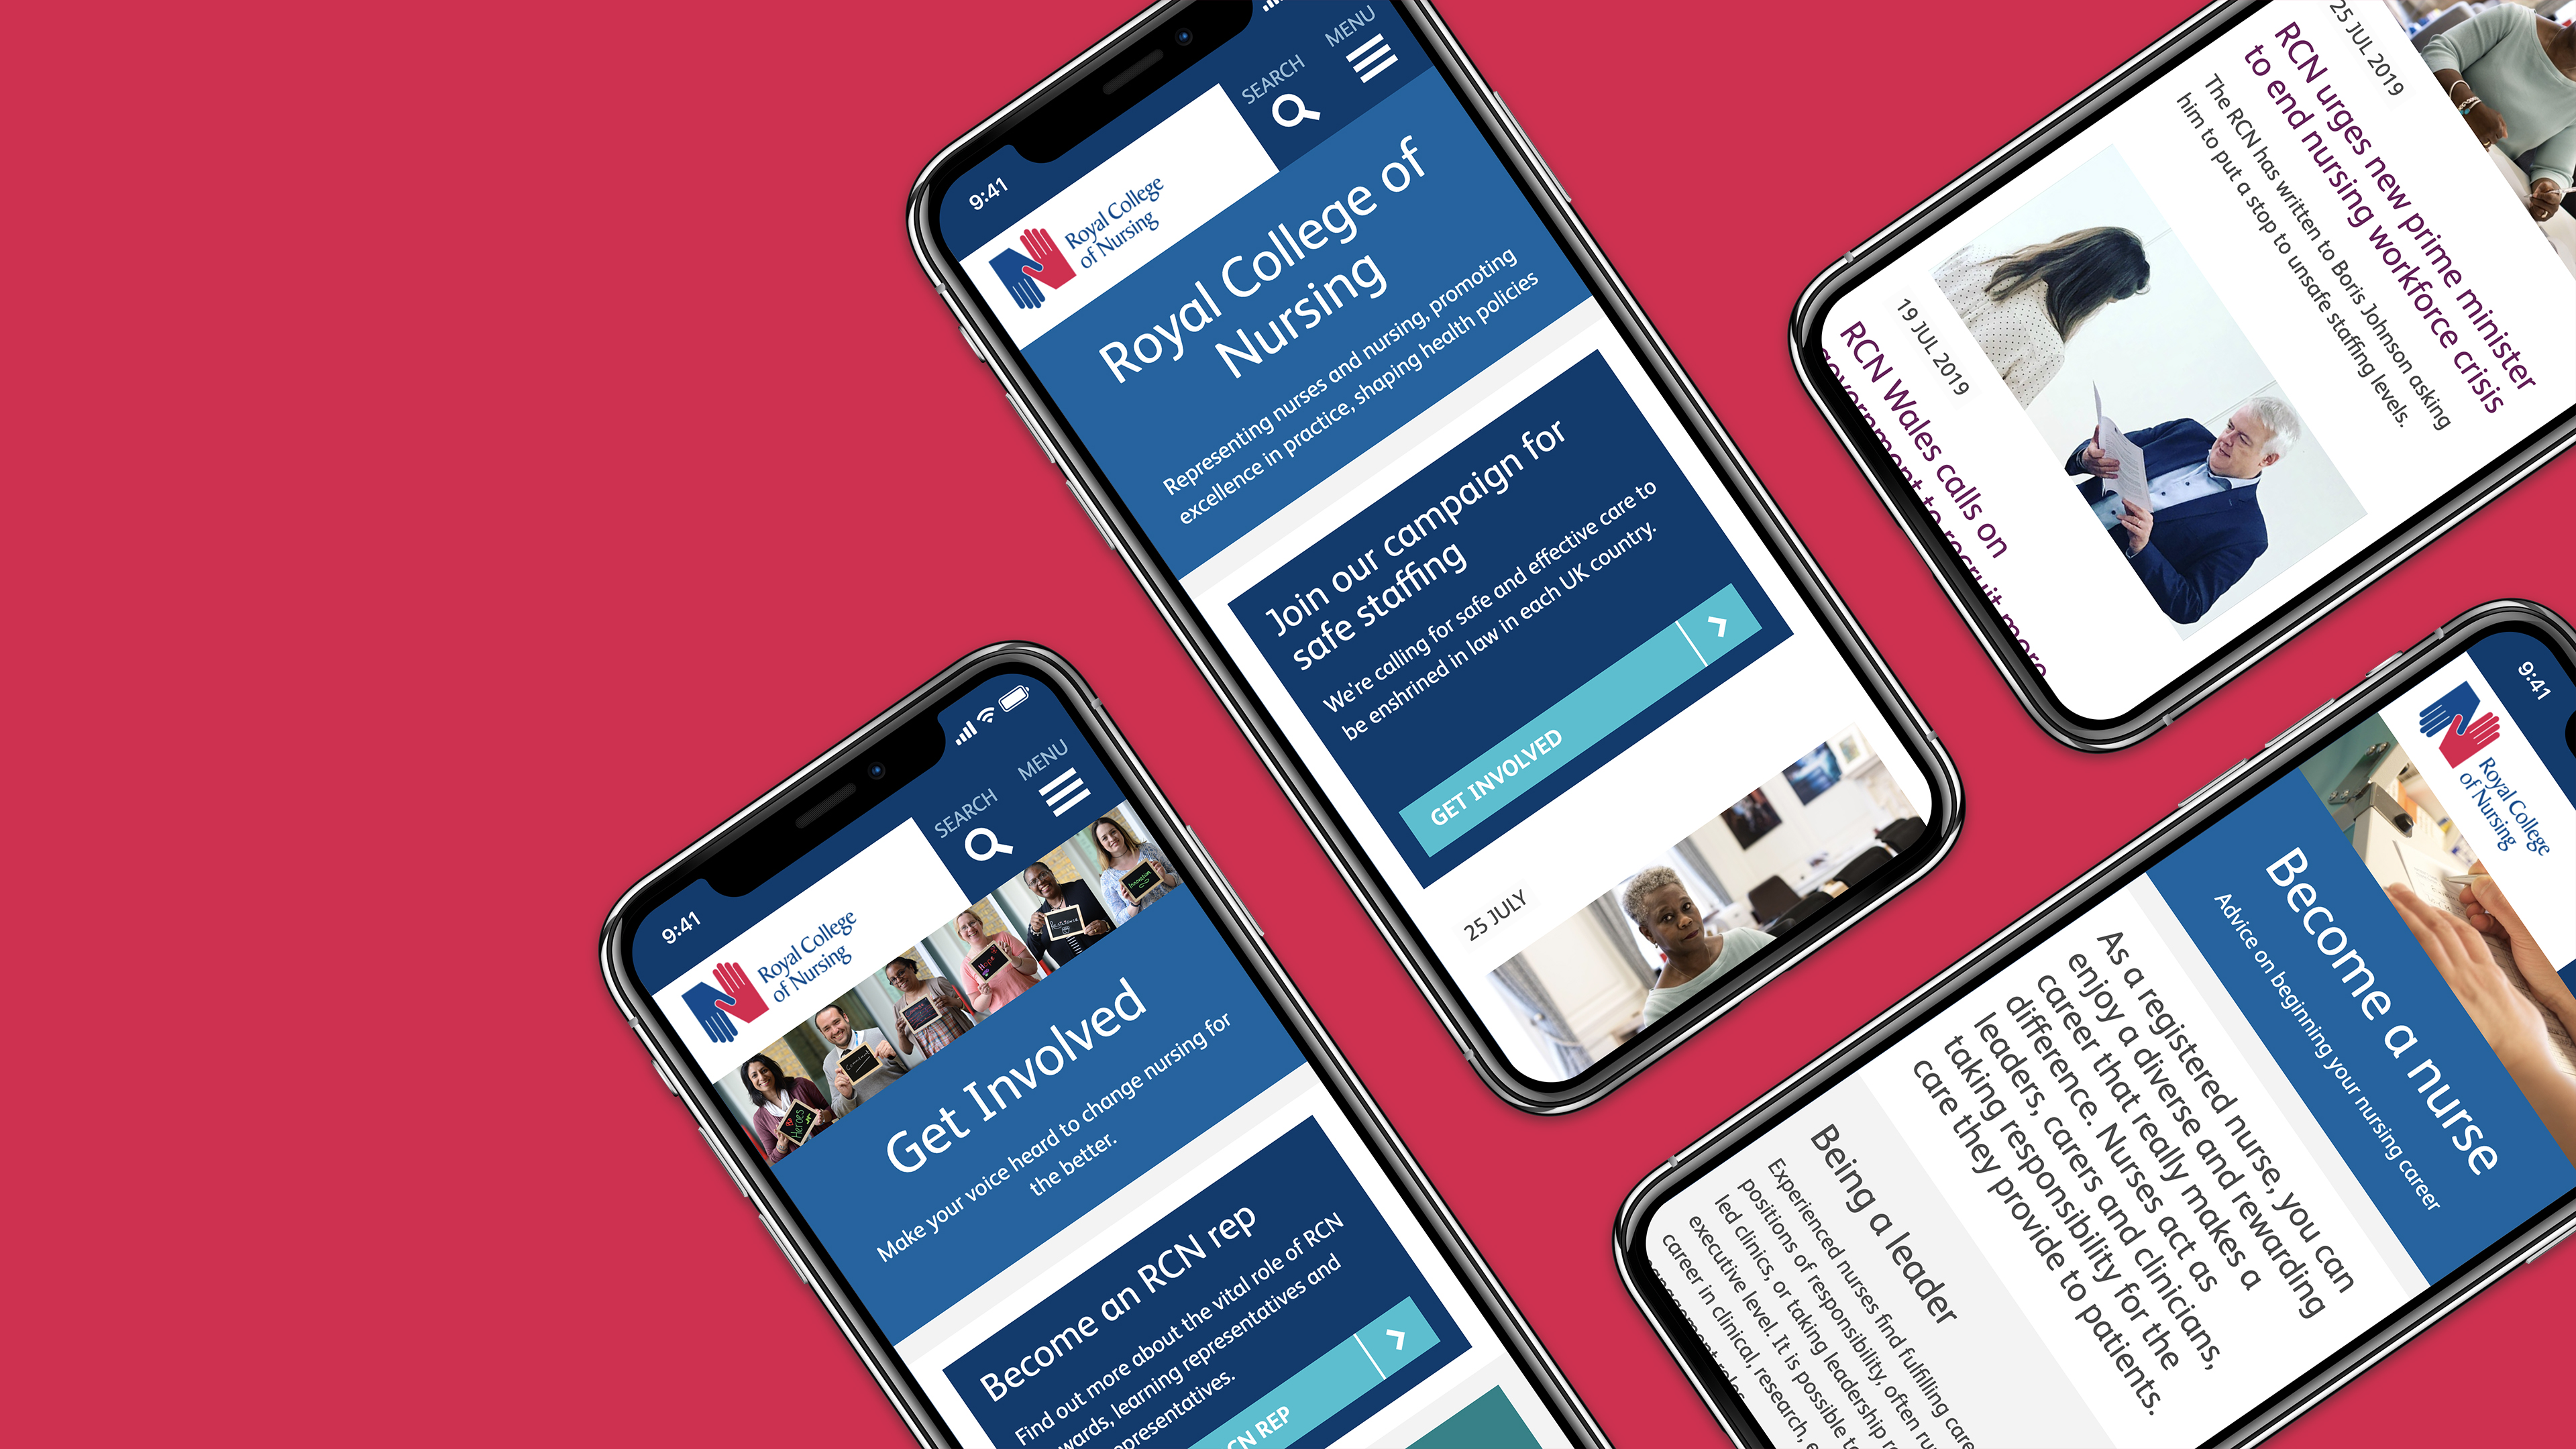 mobiles aligned on the surface with screen view for Royal College of Nursing